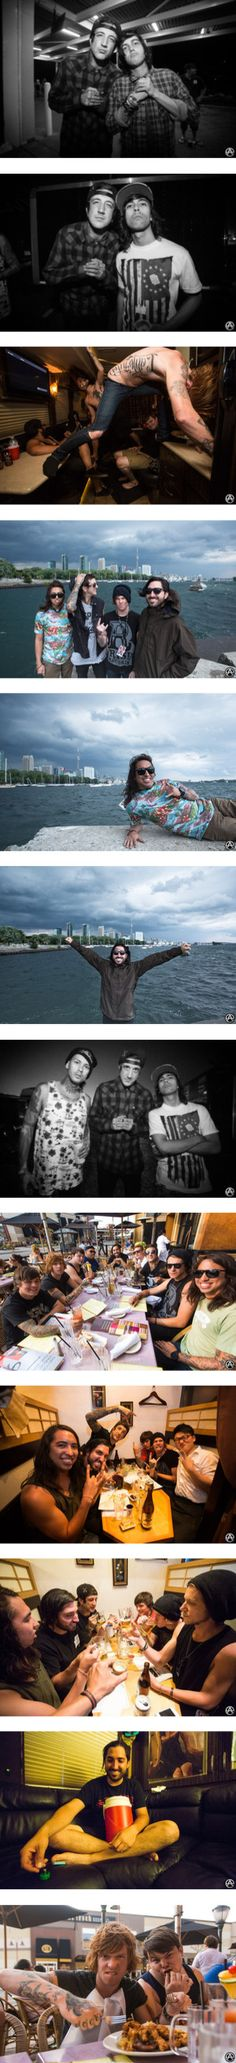 Of Mice & Men featuring Pierce The Veil and Sleeping With Sirens